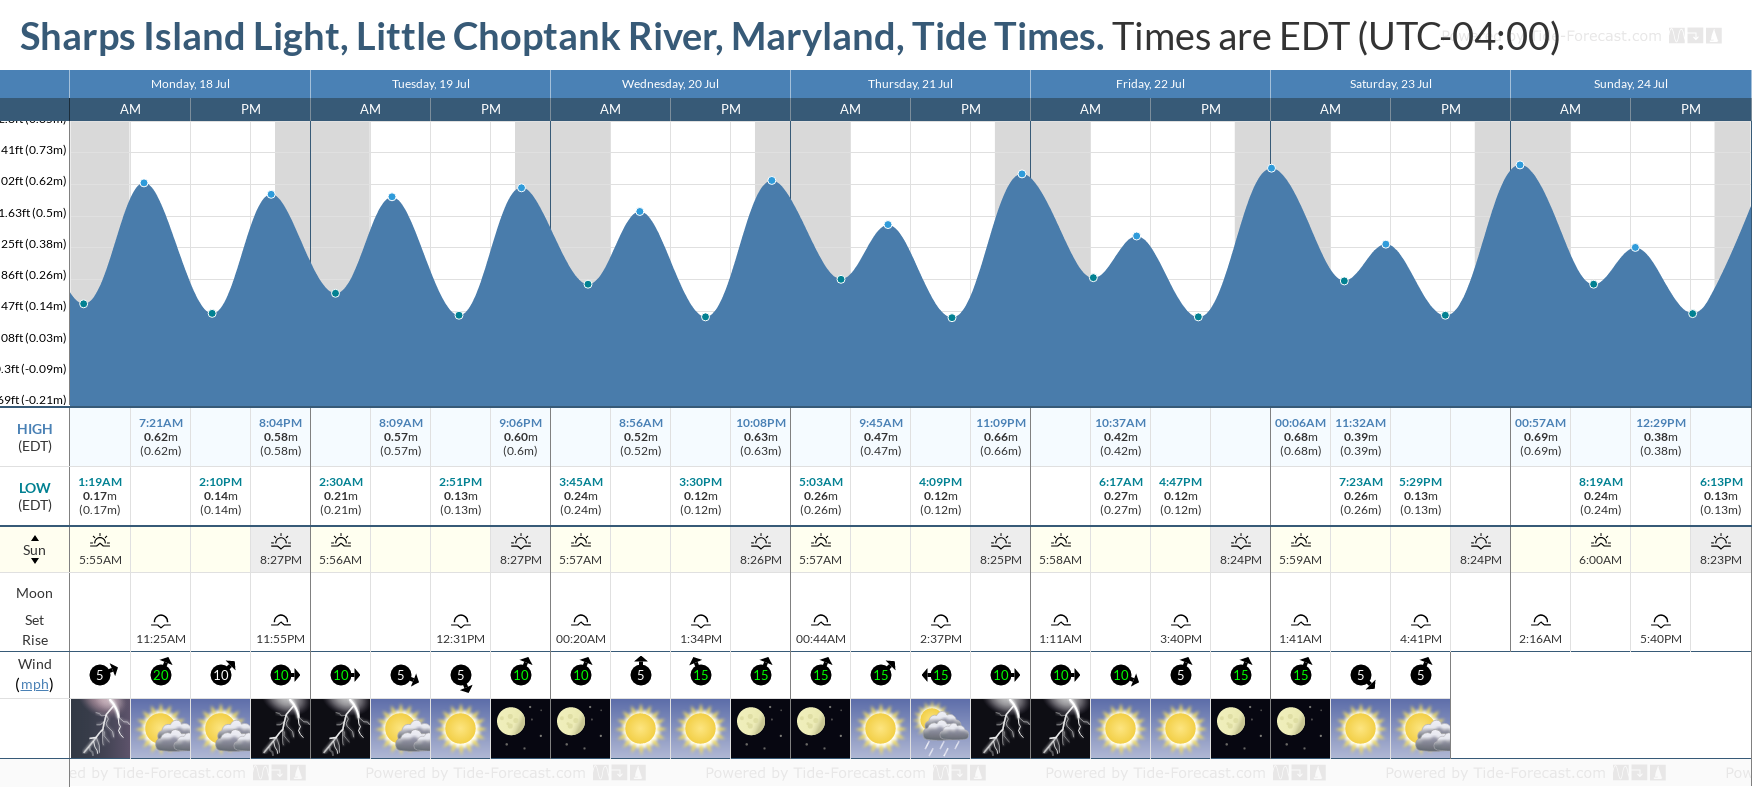 Sharps Island Light, Little Choptank River, Maryland Tide Chart including high and low tide tide times for the next 7 days